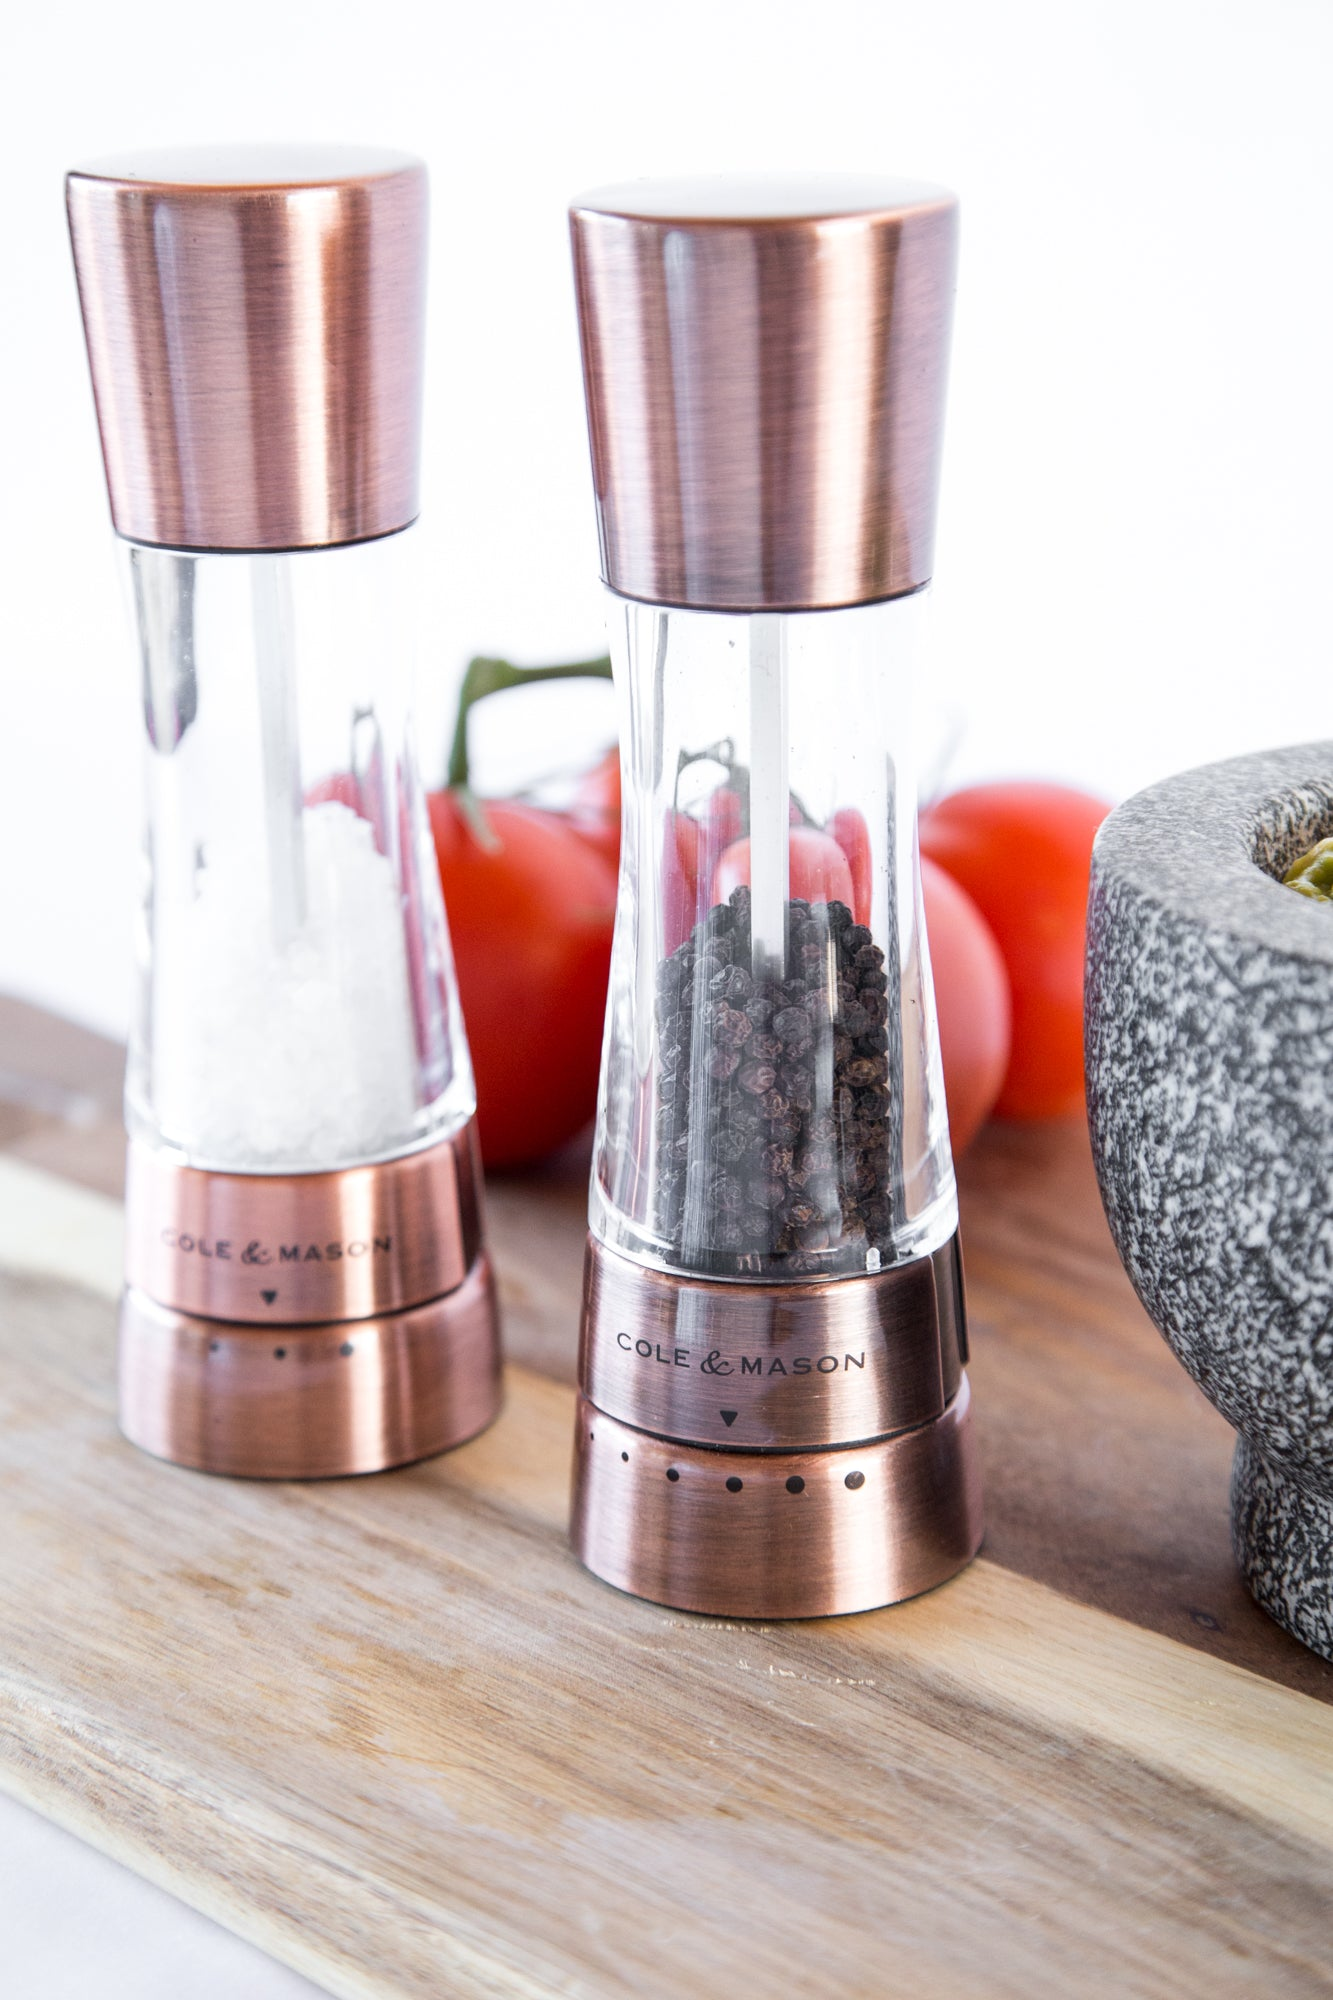 4543ec49180d ... Cole & Mason Gourmet Precision Derwent Acrylic and Stainless Steel Salt  & Pepper Mill Gift Set ...